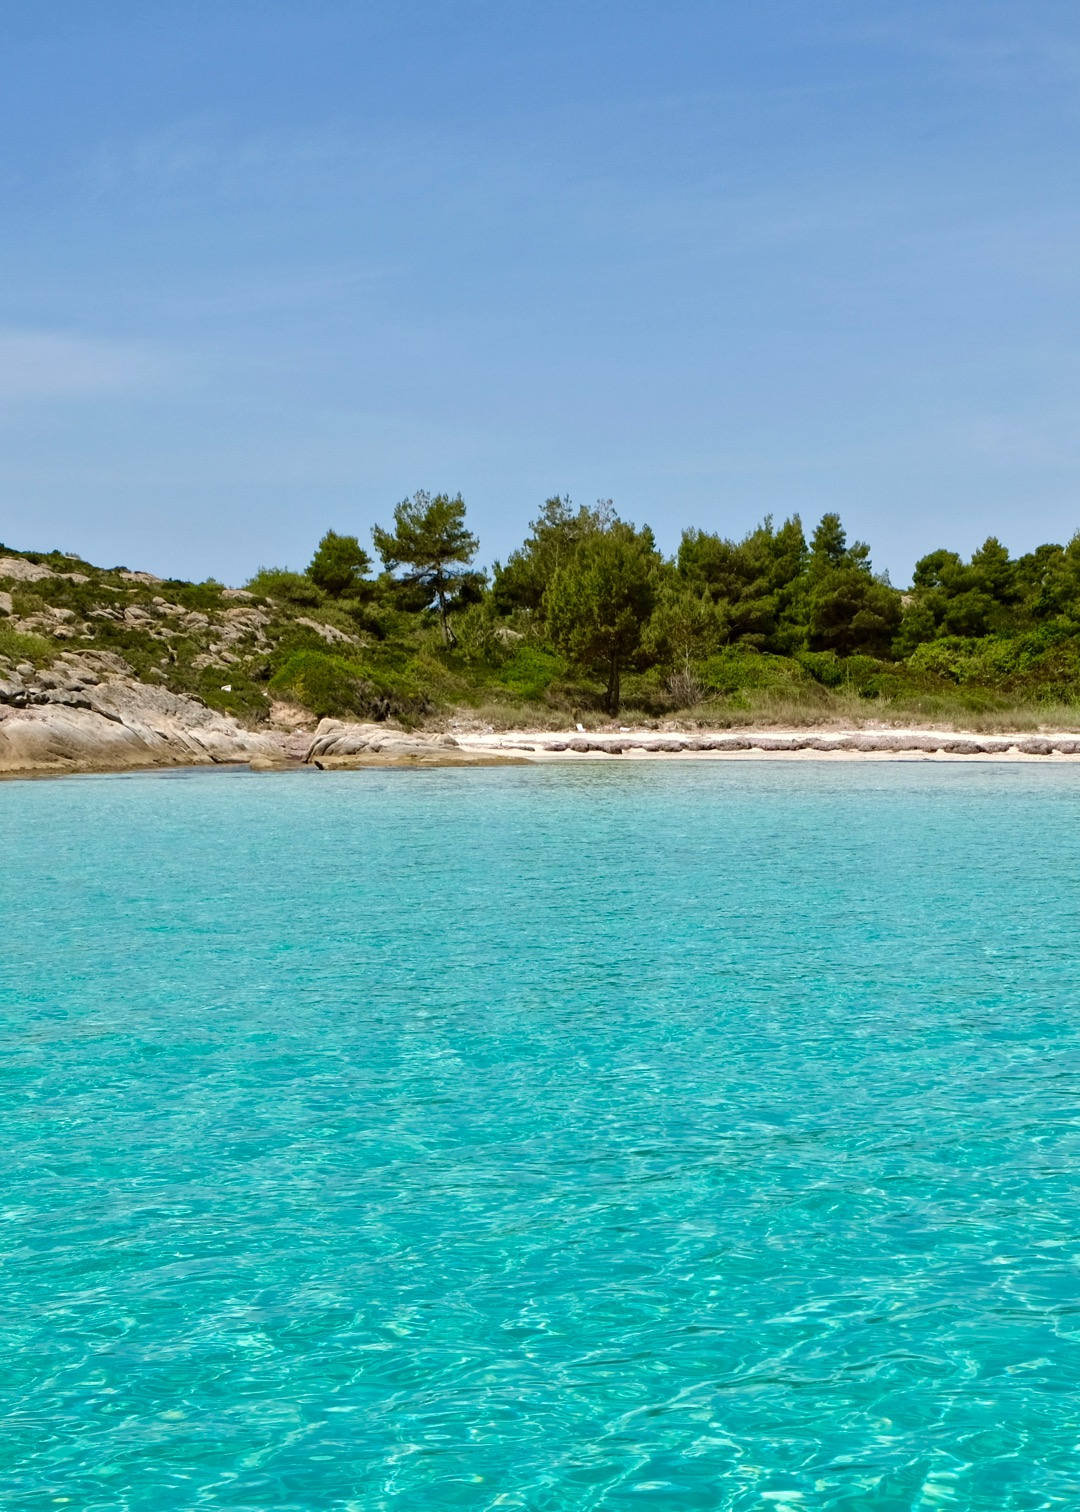 Myrsini Bay at Diaporos Island, Sithonia, Greece